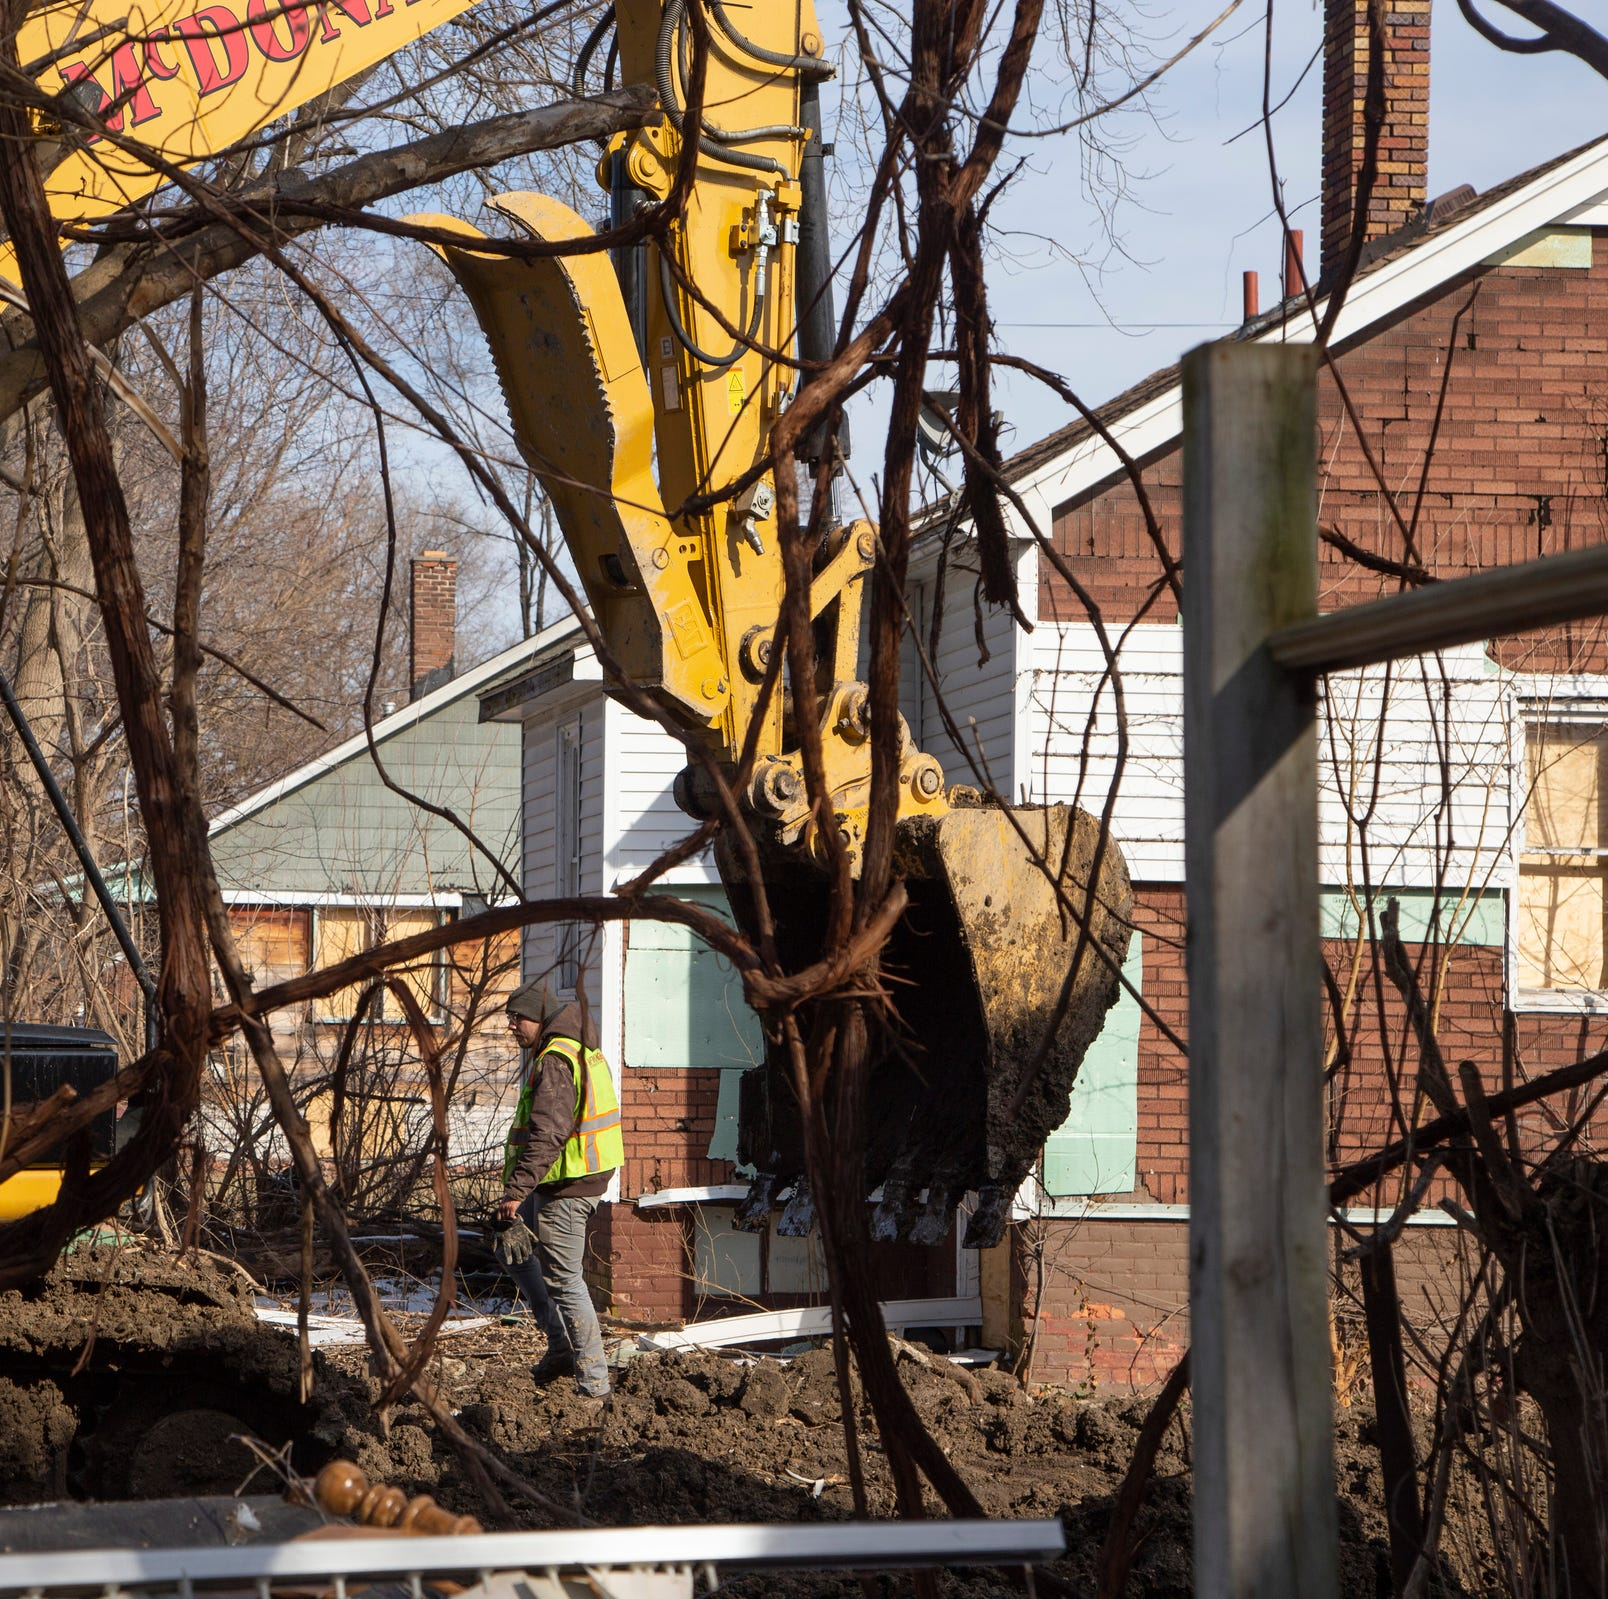 Feds probe Detroit Land Bank contractor that tore down homes, hid debris in holes